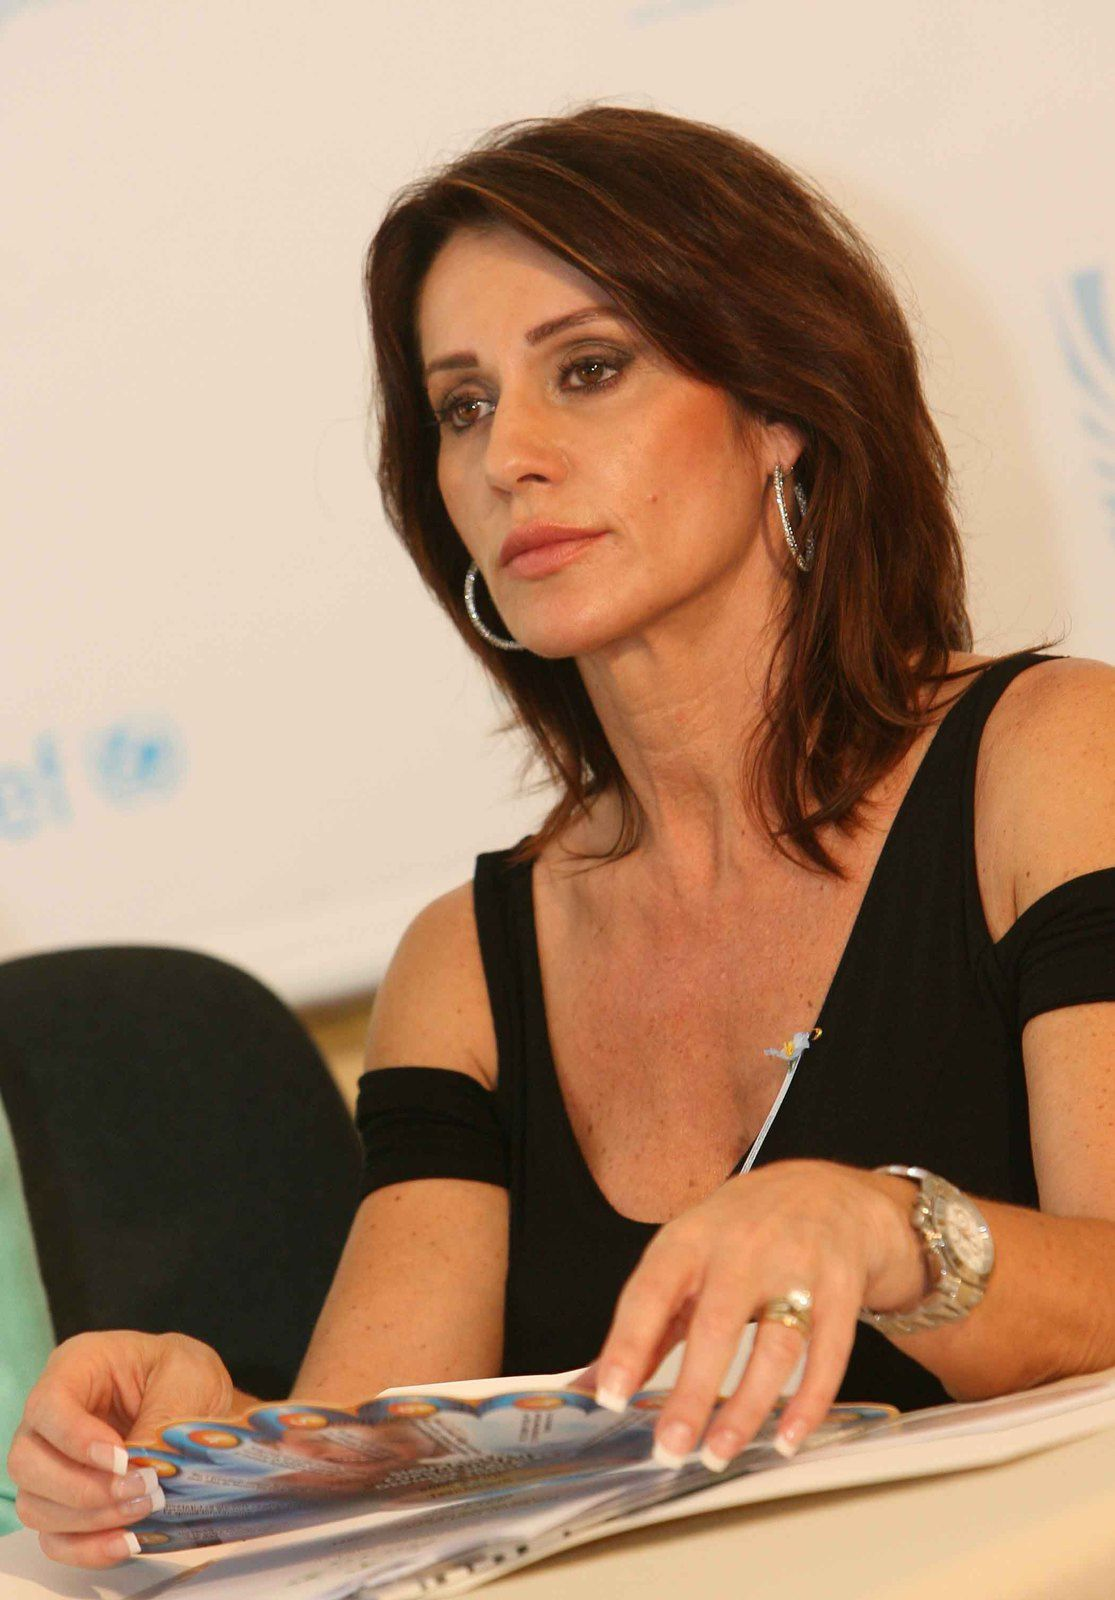 Nadia Comaneci was the first ever Olympic gymnast to achieve a perfect ten score : Olympic gymnast Nadia Comaneci gives advice to startups : As an entrepreneur and a gymnast, you have to be UNWILLING TO STOP